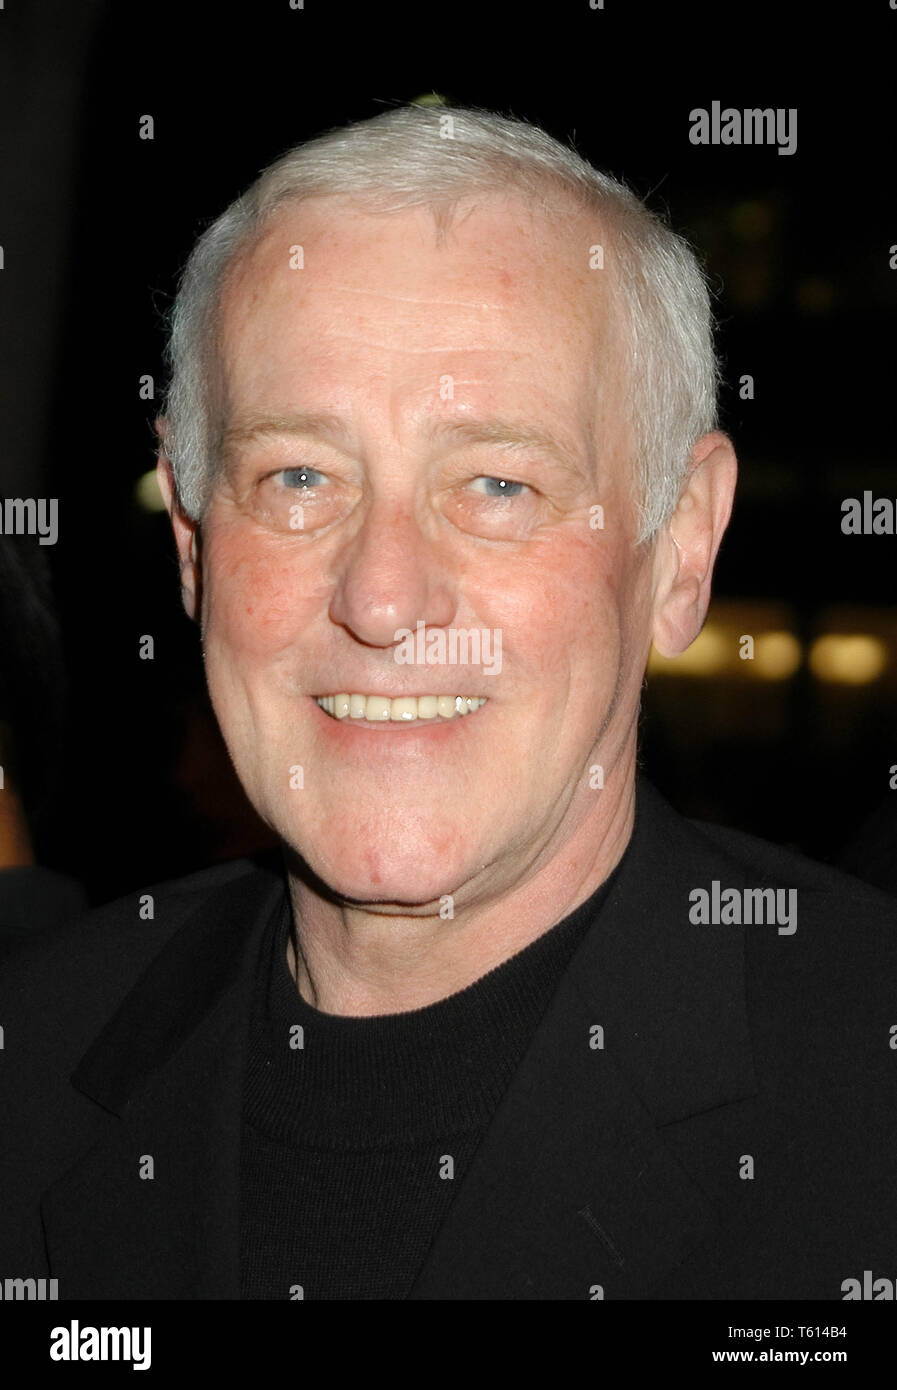 John Mahoney at the Academy of Television Arts & Sciences dinner honoring the 55th Annual Primetime Emmy Awards Nominees for Outstanding Performing Talent at Spagos in Beverly Hills, CA. The event took place on Thursday, September 18, 2003. Photo by: SBM / PictureLux  File Reference # 33790_1839SBMPLX - Stock Image